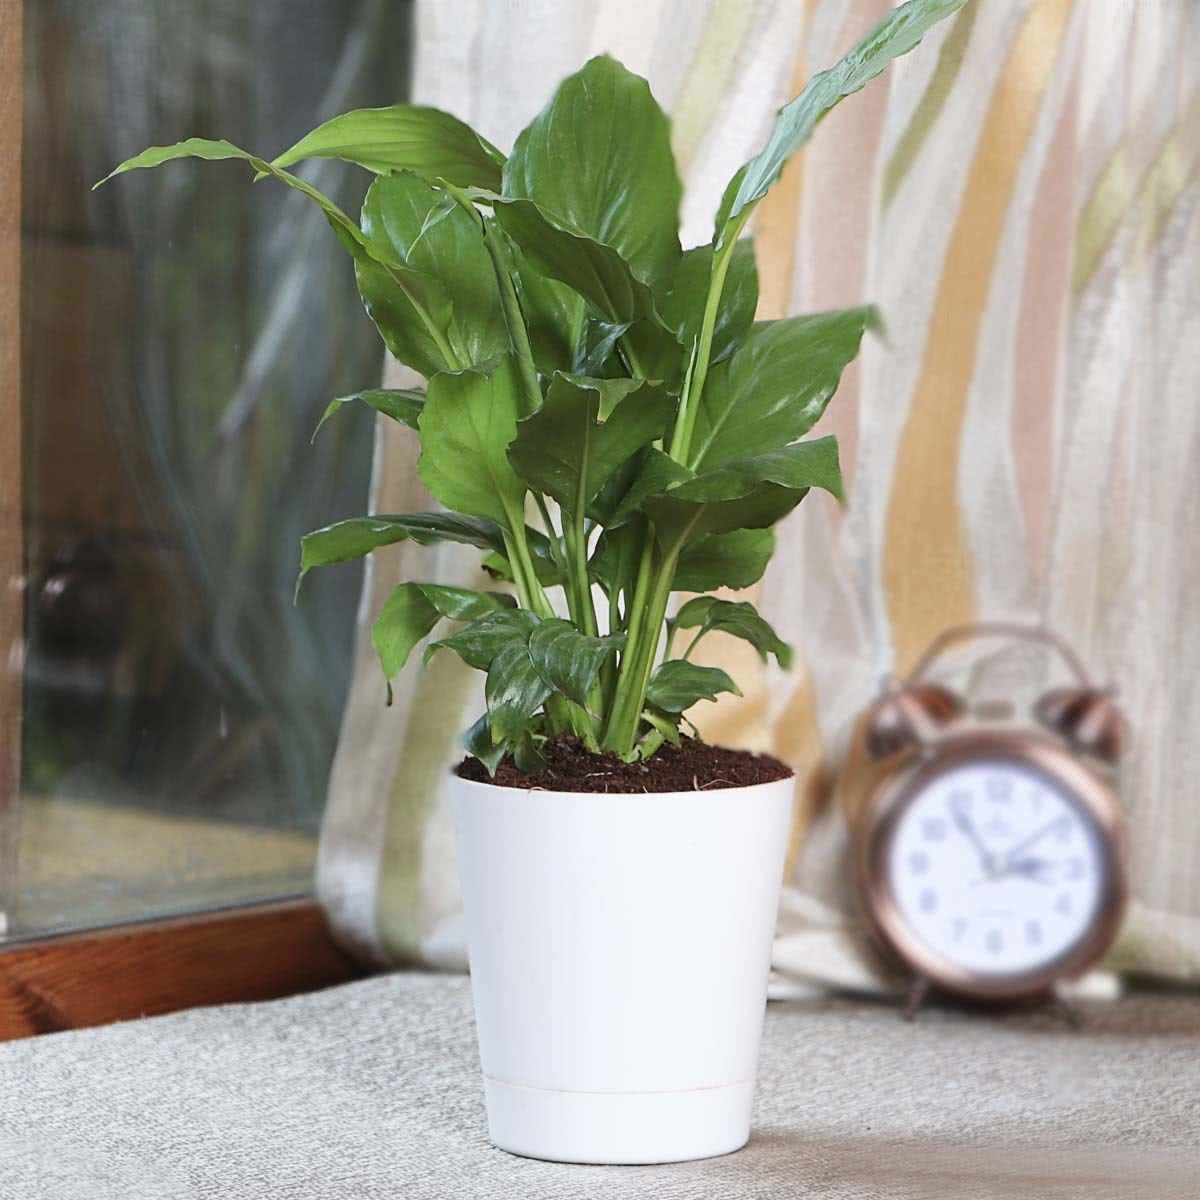 A peace lily plant in a white planter